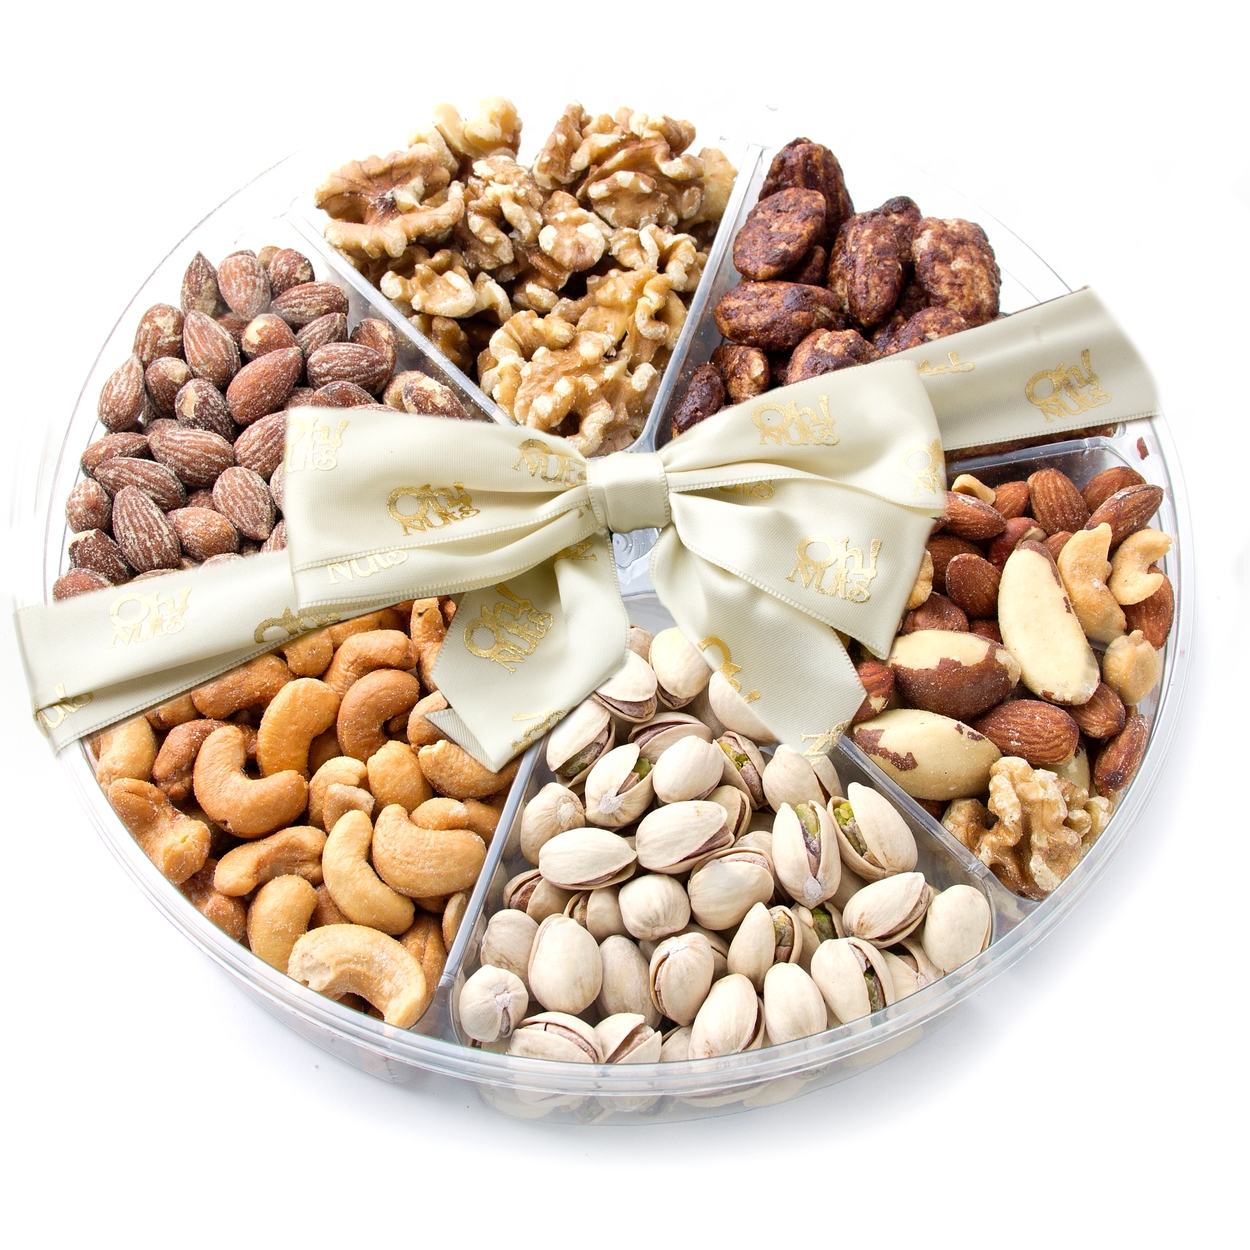 6-Section Assorted Nut Platter - Nuts Gift Basket  sc 1 st  Oh! Nuts & Nut Tray Gift Baskets at Cheap Bulk Prices - Oh! Nuts \u2022 Oh! Nuts®